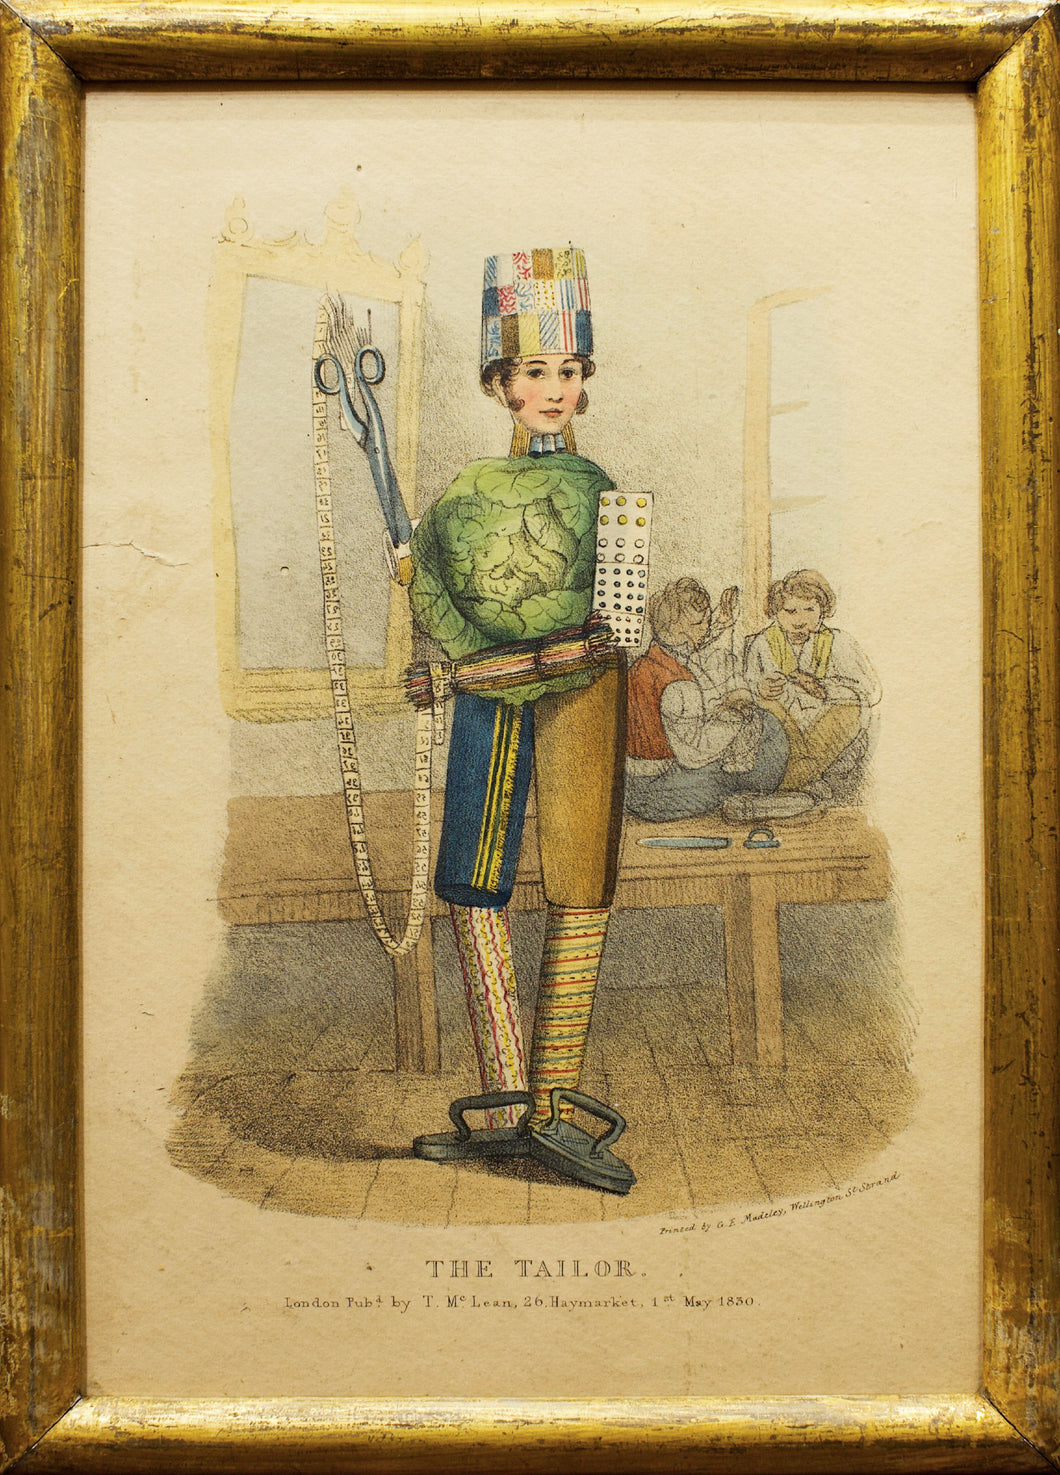 The Tailor - Antique Caricature 1830